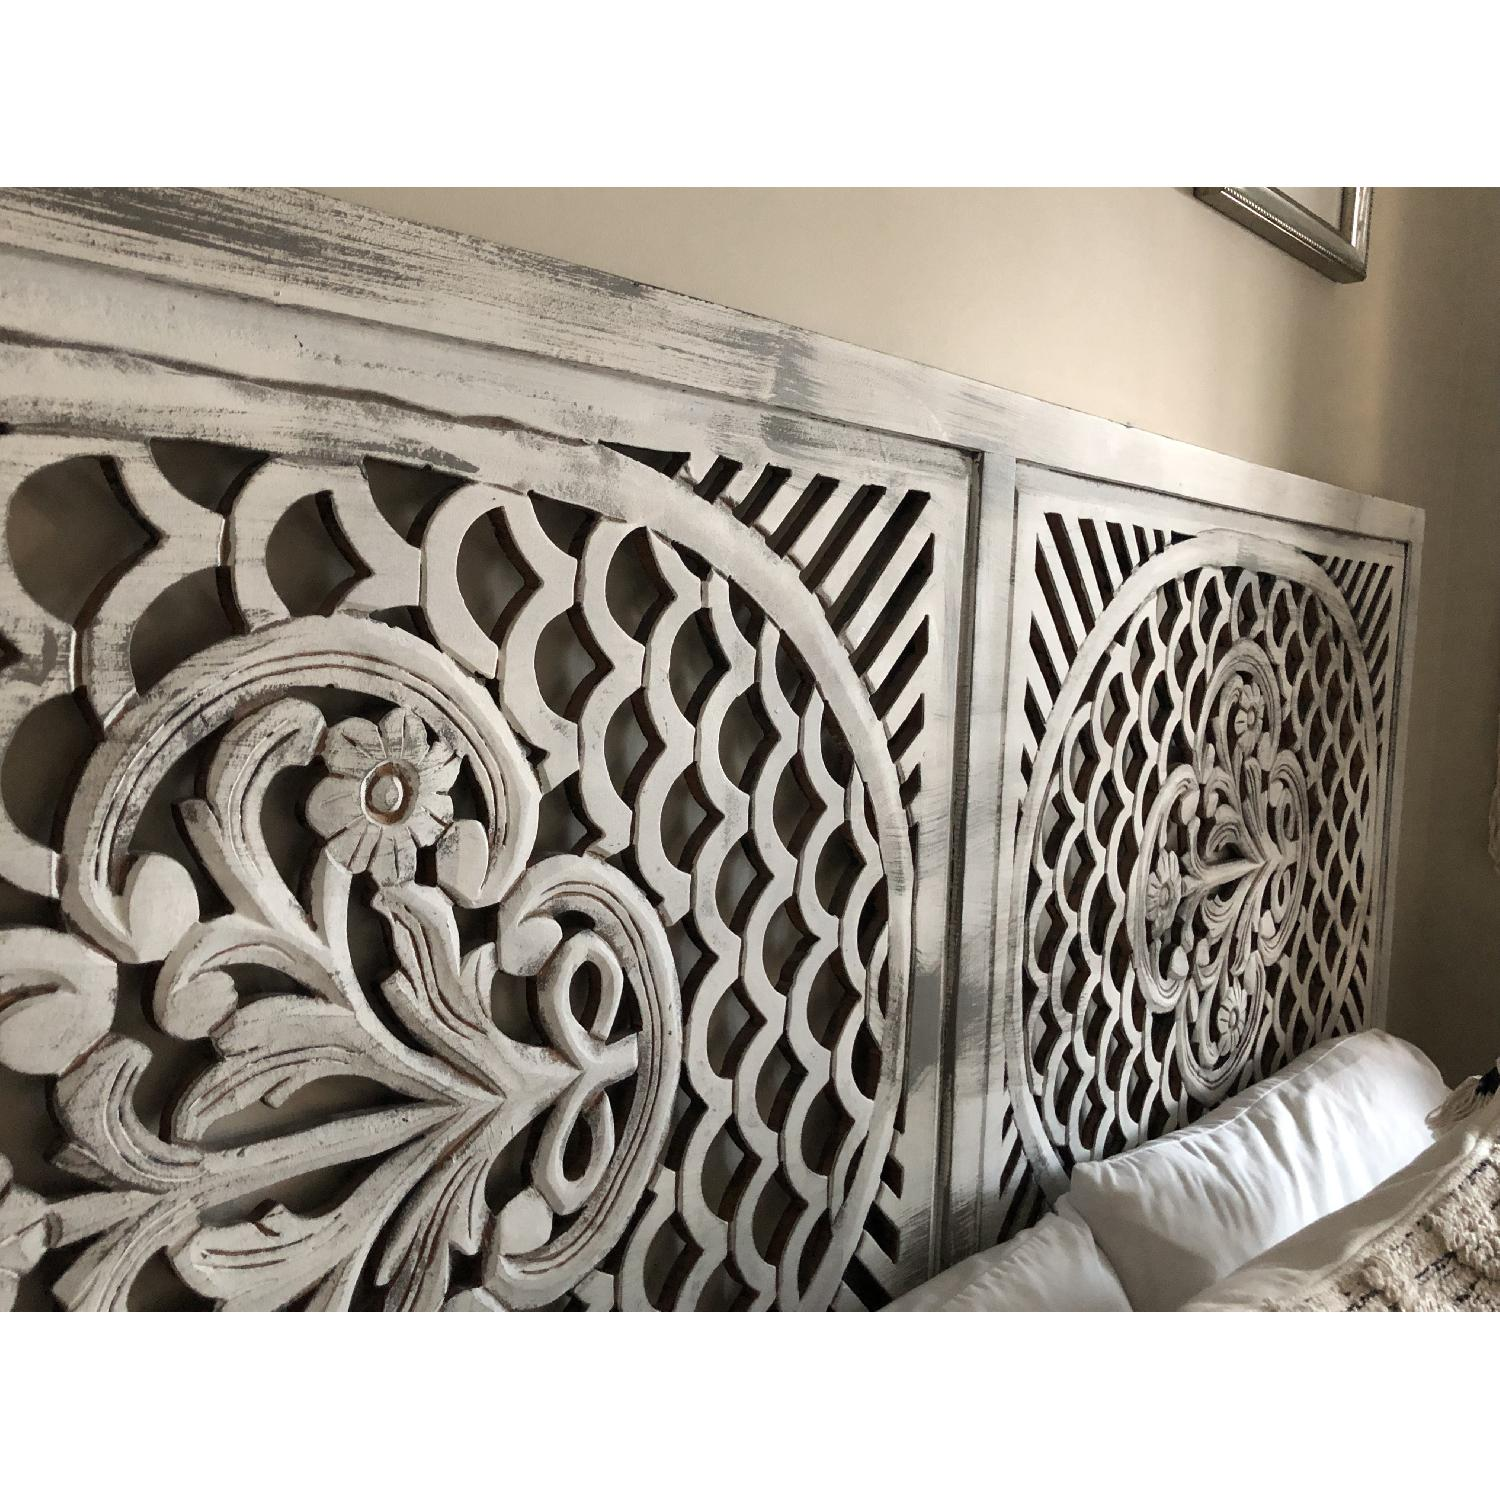 Pier 1 Distressed Wooden Screen/Headboard-4